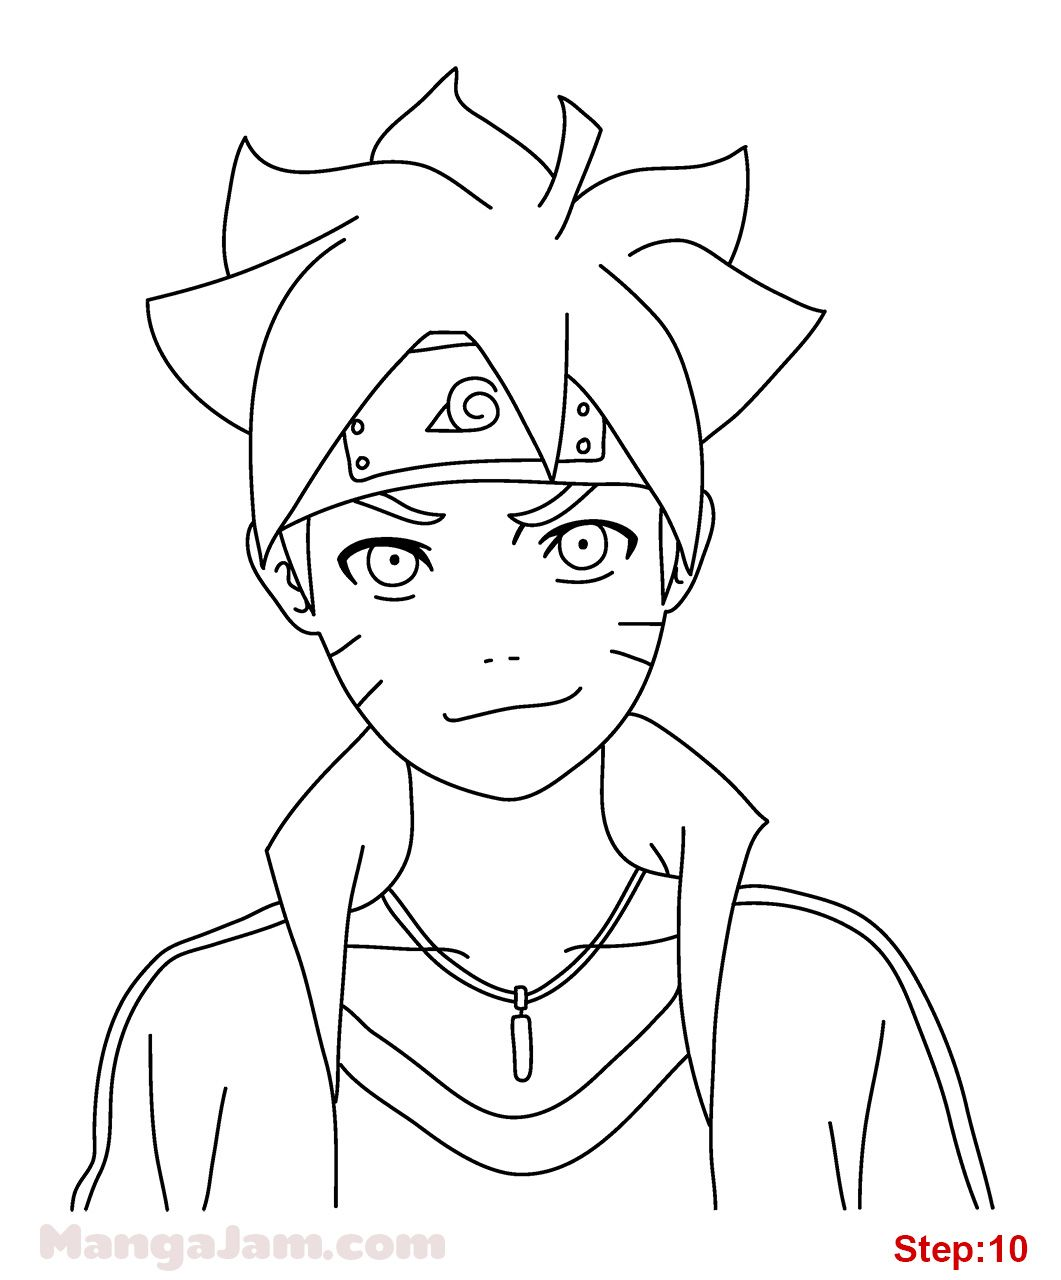 Lets learn how to draw boruto uzumaki from naruto today